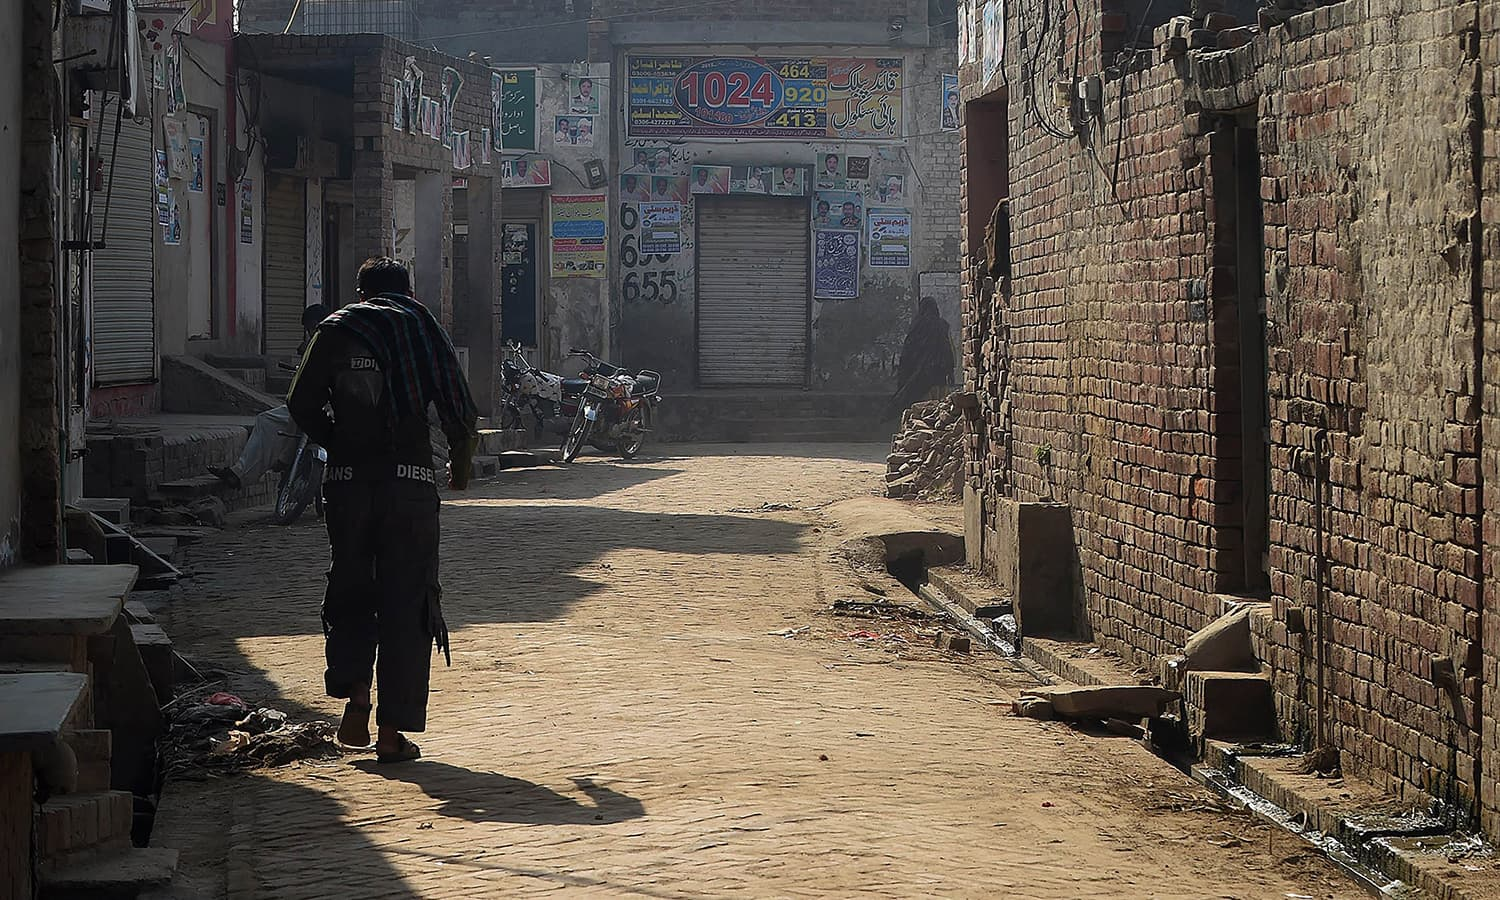 A Pakistani victim of child abuse walks along a street in Hussain Khan Wala village in Punjab province. — AFP